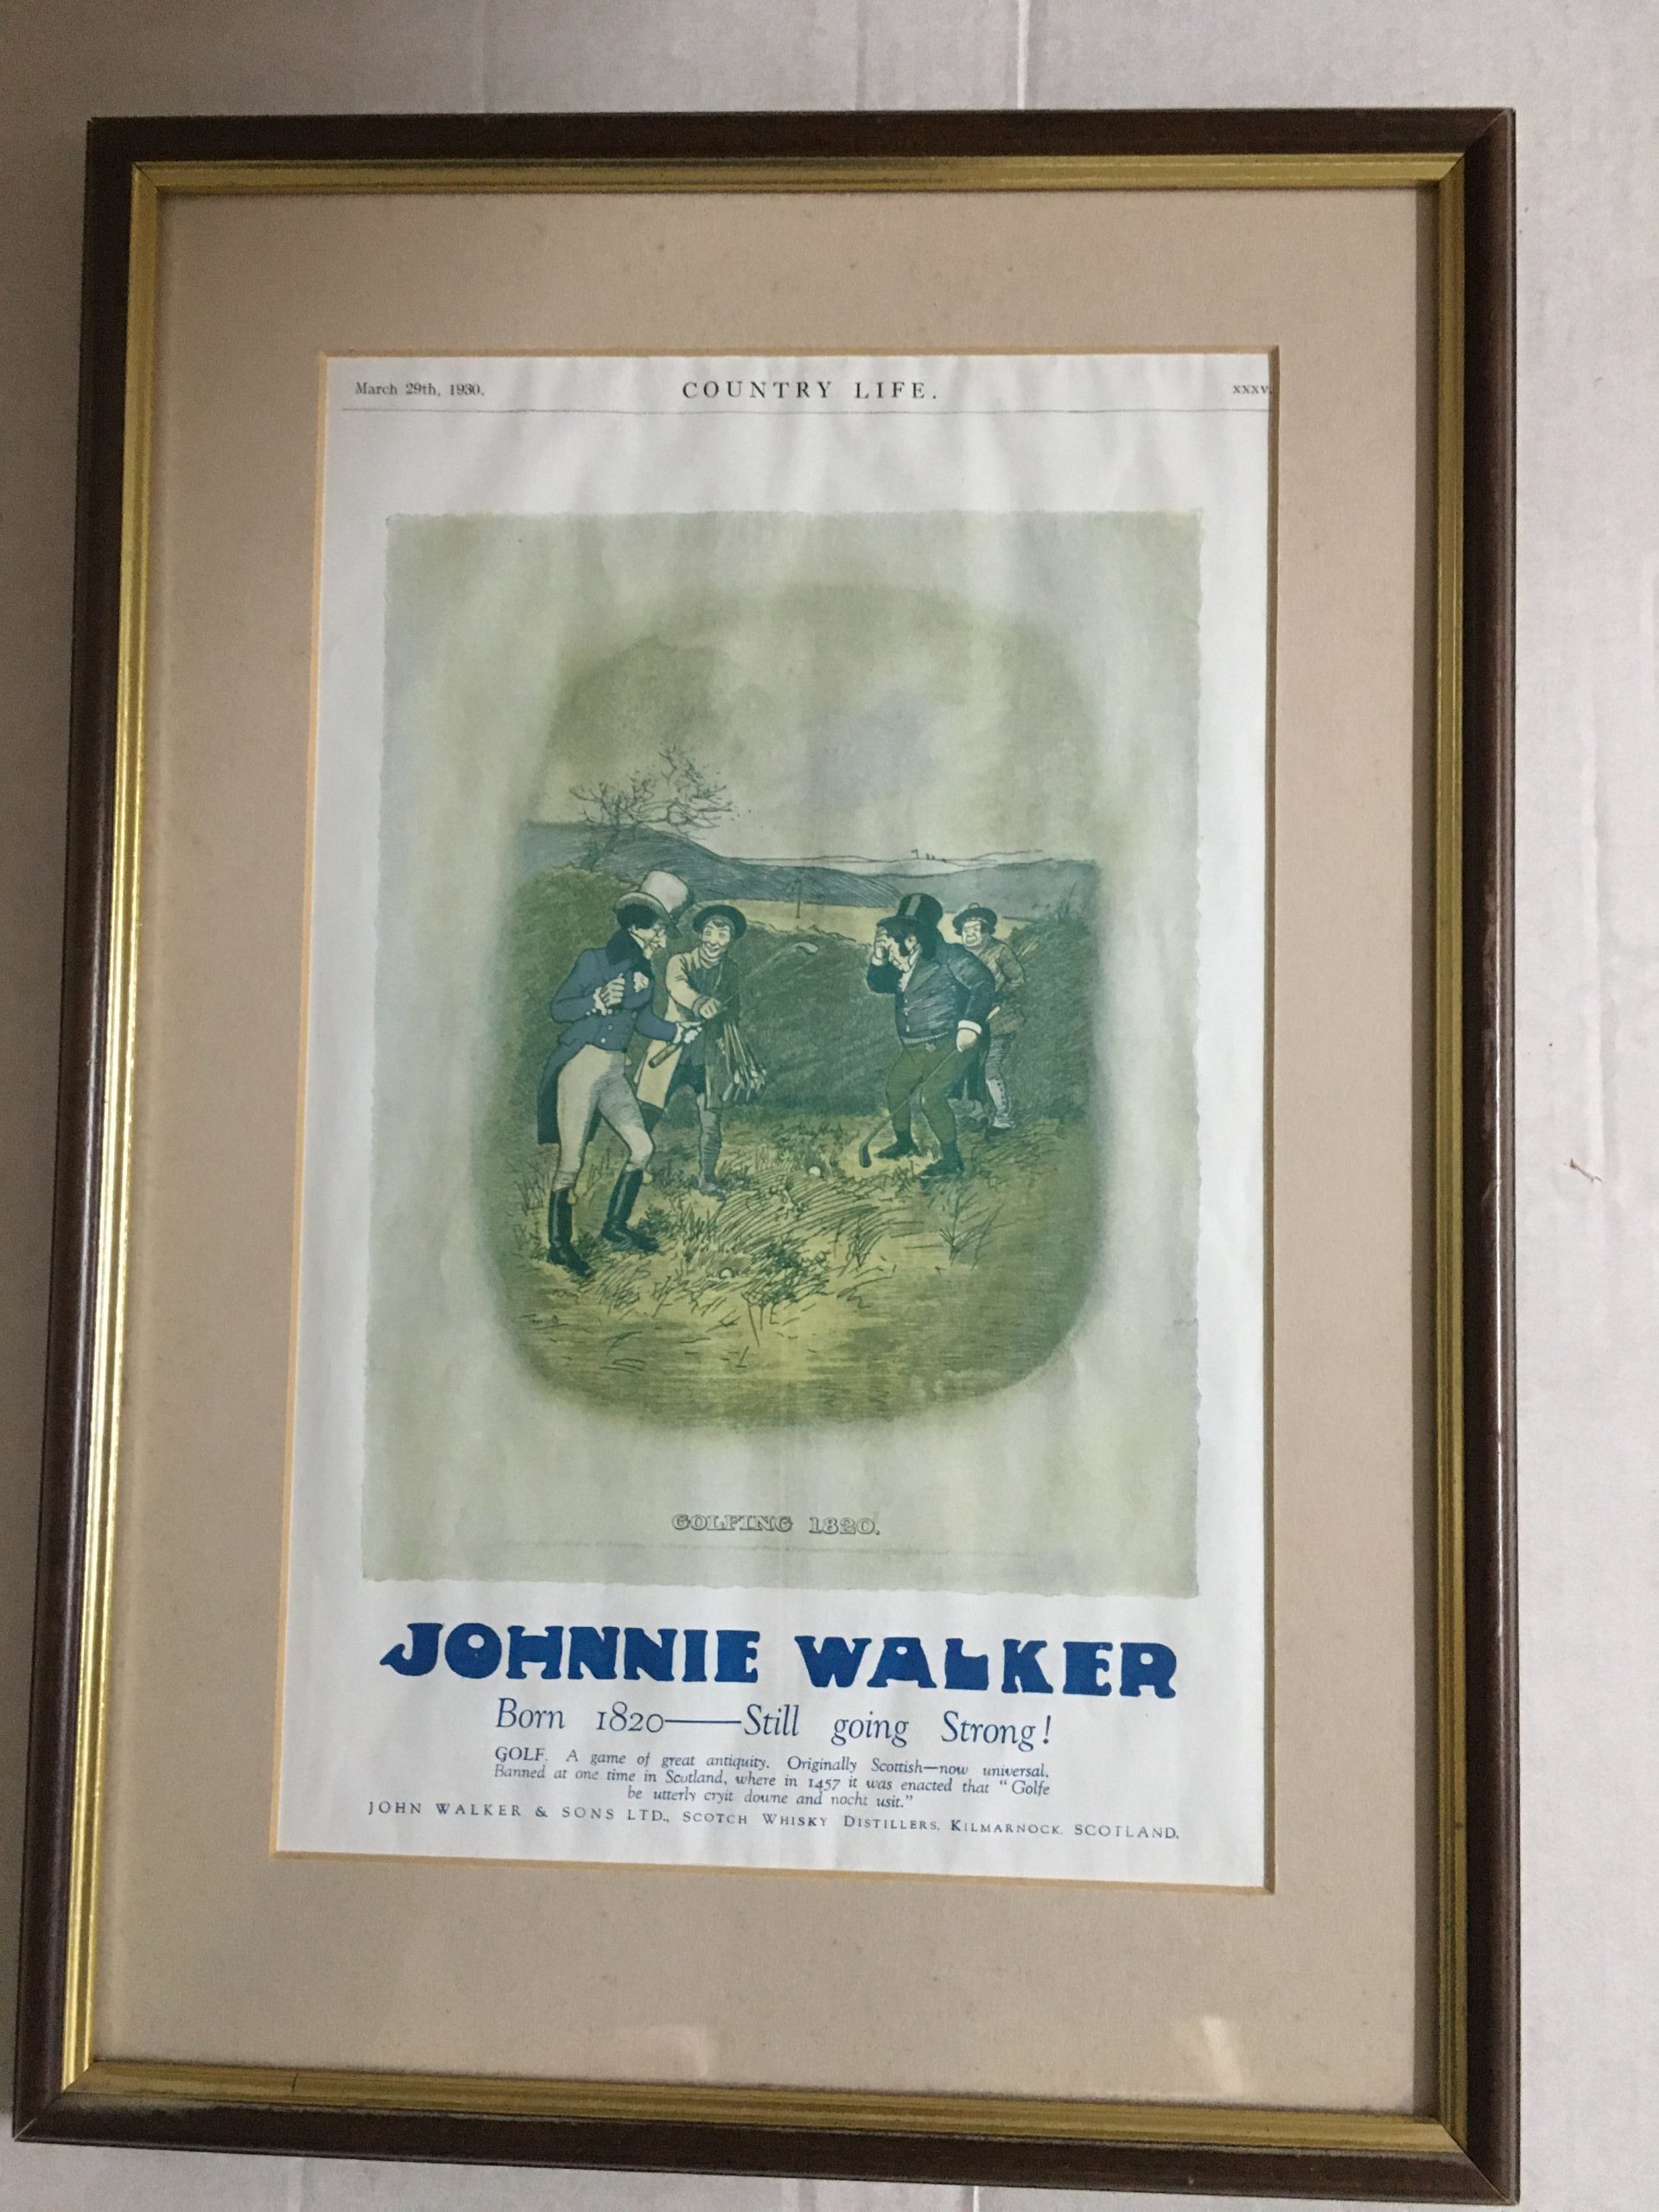 Country Life Johnnie Walker Scotch Whisky Advertisement